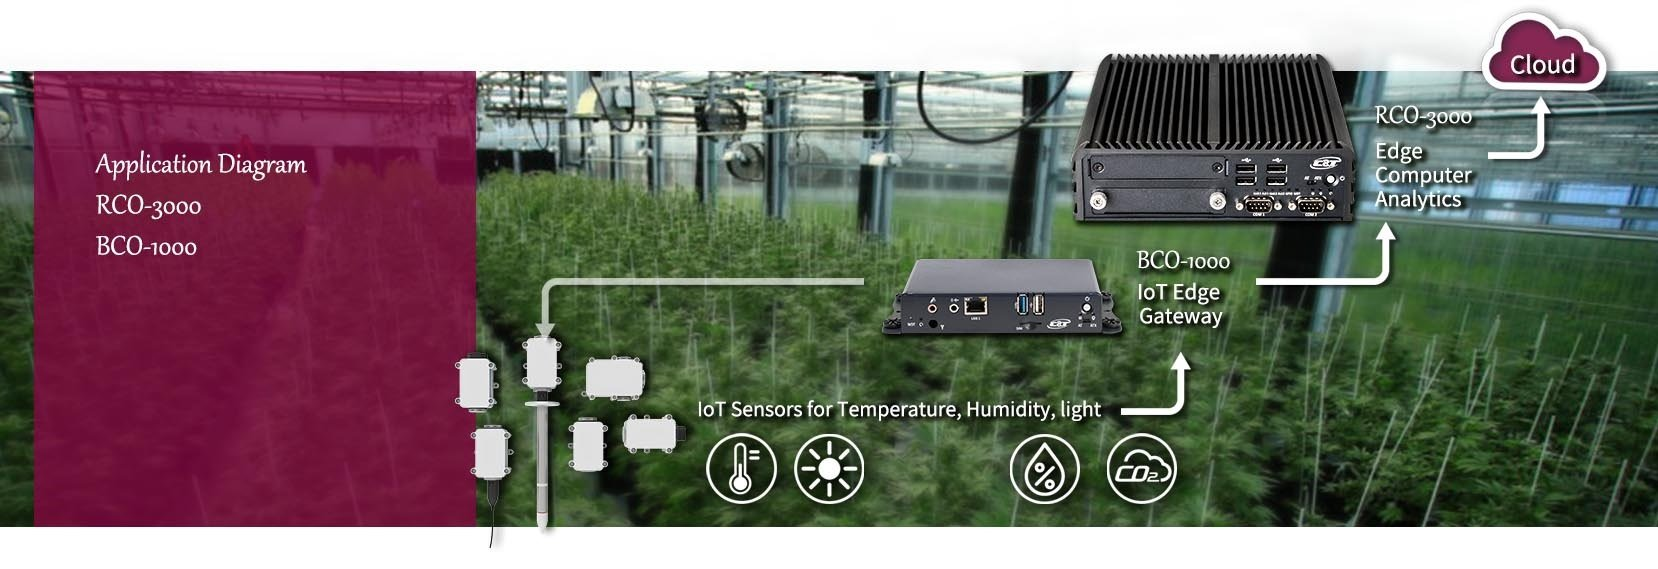 smart-agriculture-iot-gateways-case-study